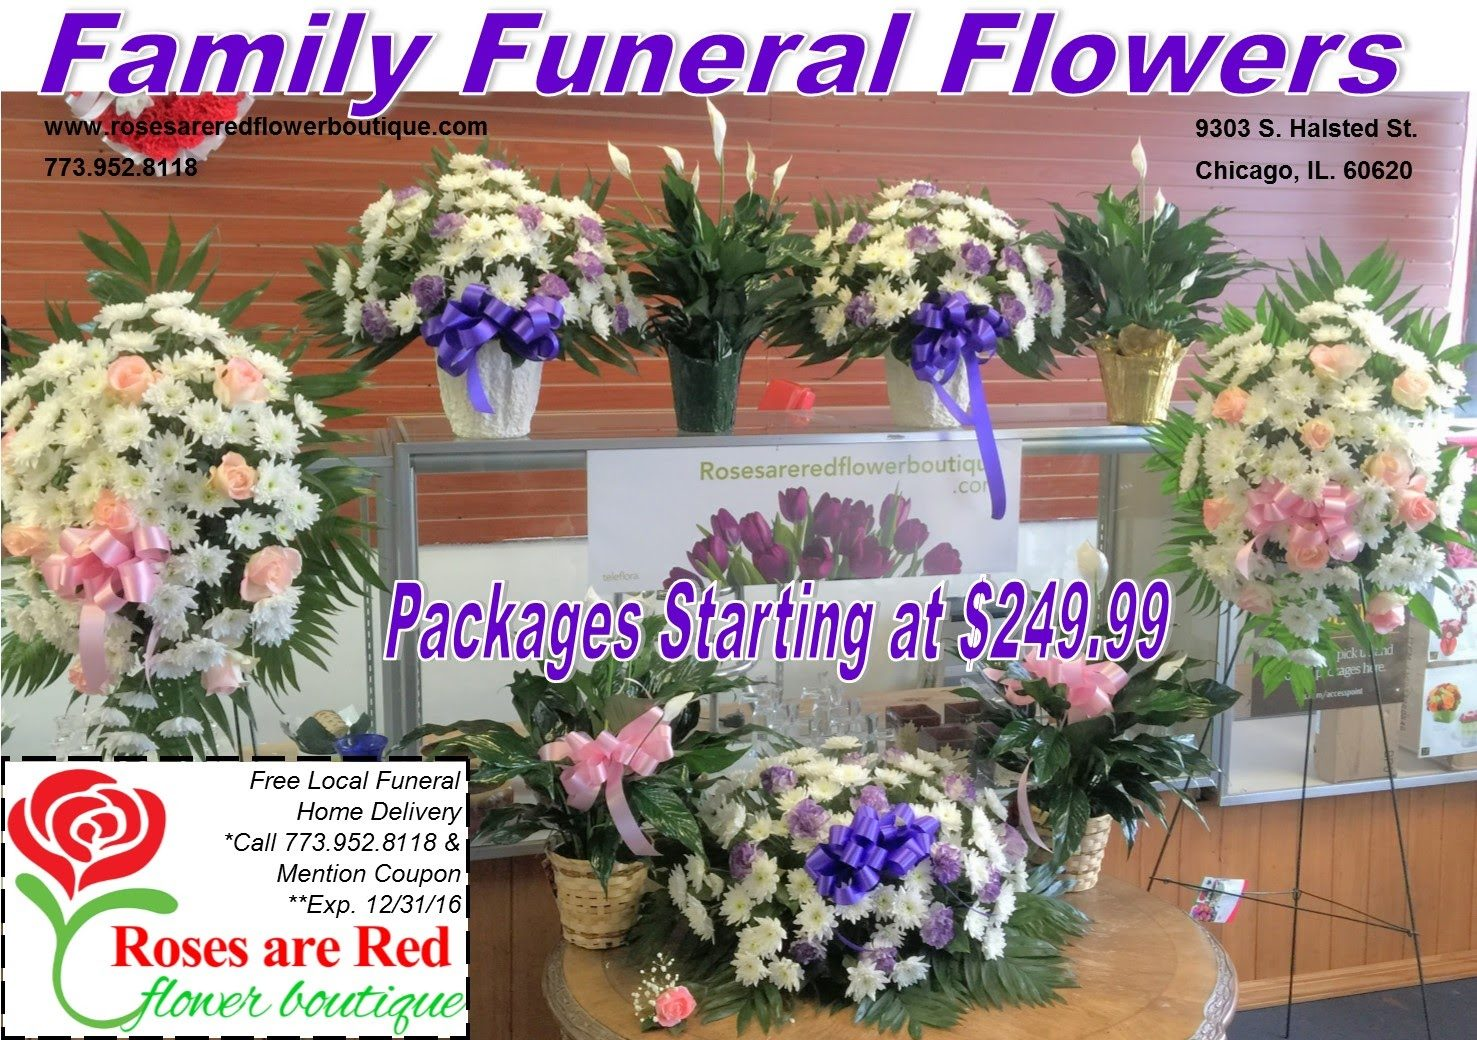 Roses are red flower boutique united states illinois chicago boutique is a full service florist with over 30 years of retail floral expertise partnered with ftd teleflora national delivery services izmirmasajfo